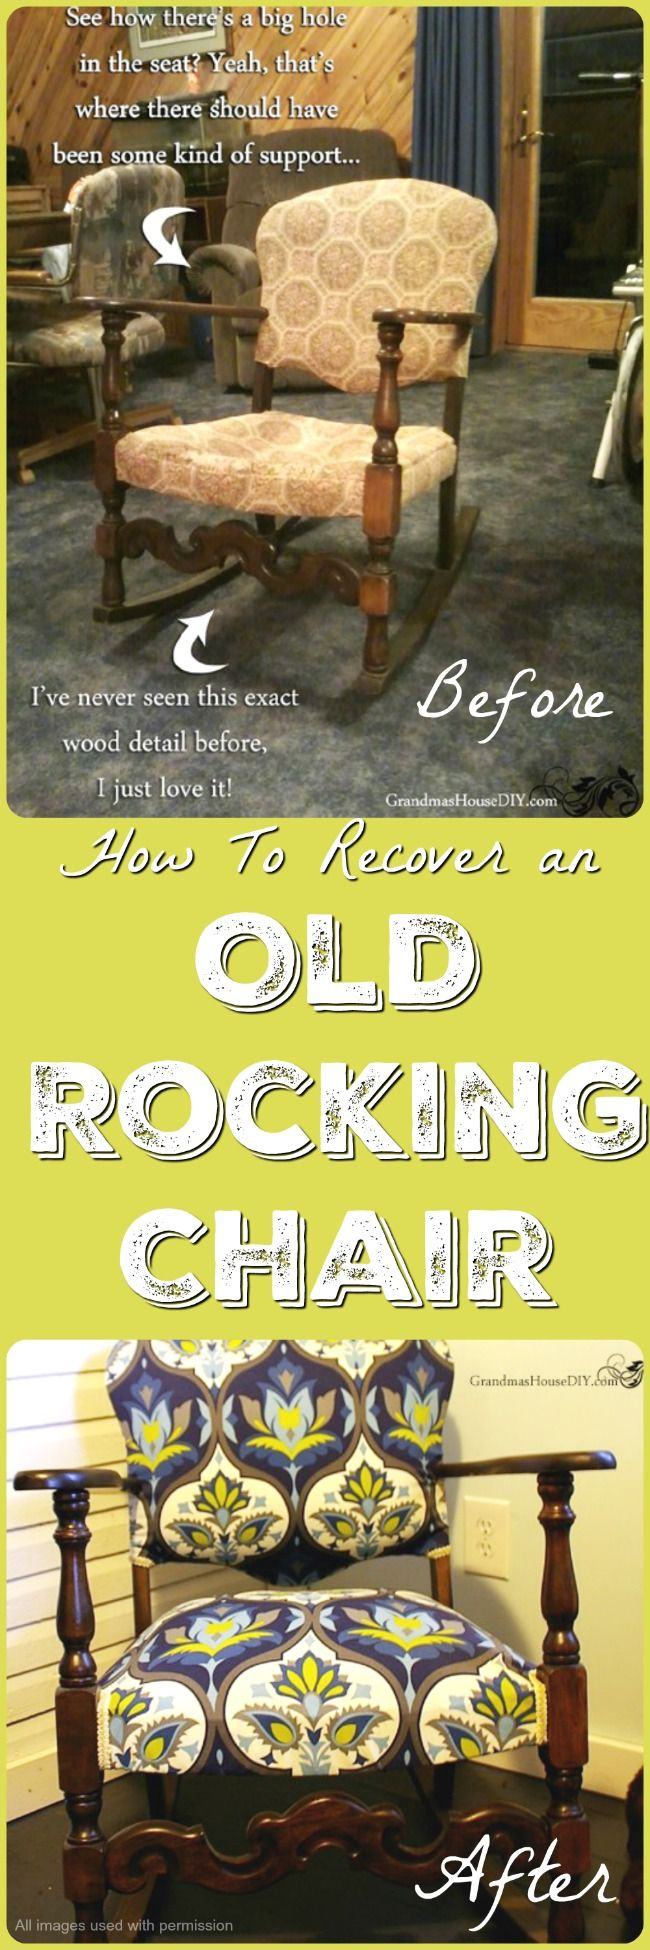 Today's featured DIY project is focused on how to restore, recover or reupholster and refinish an old rocking chair. The nice thing about old furniture is that it has generally been built very well. Not only has old furniture been built well, there's also some beautiful woodworking and finishing...